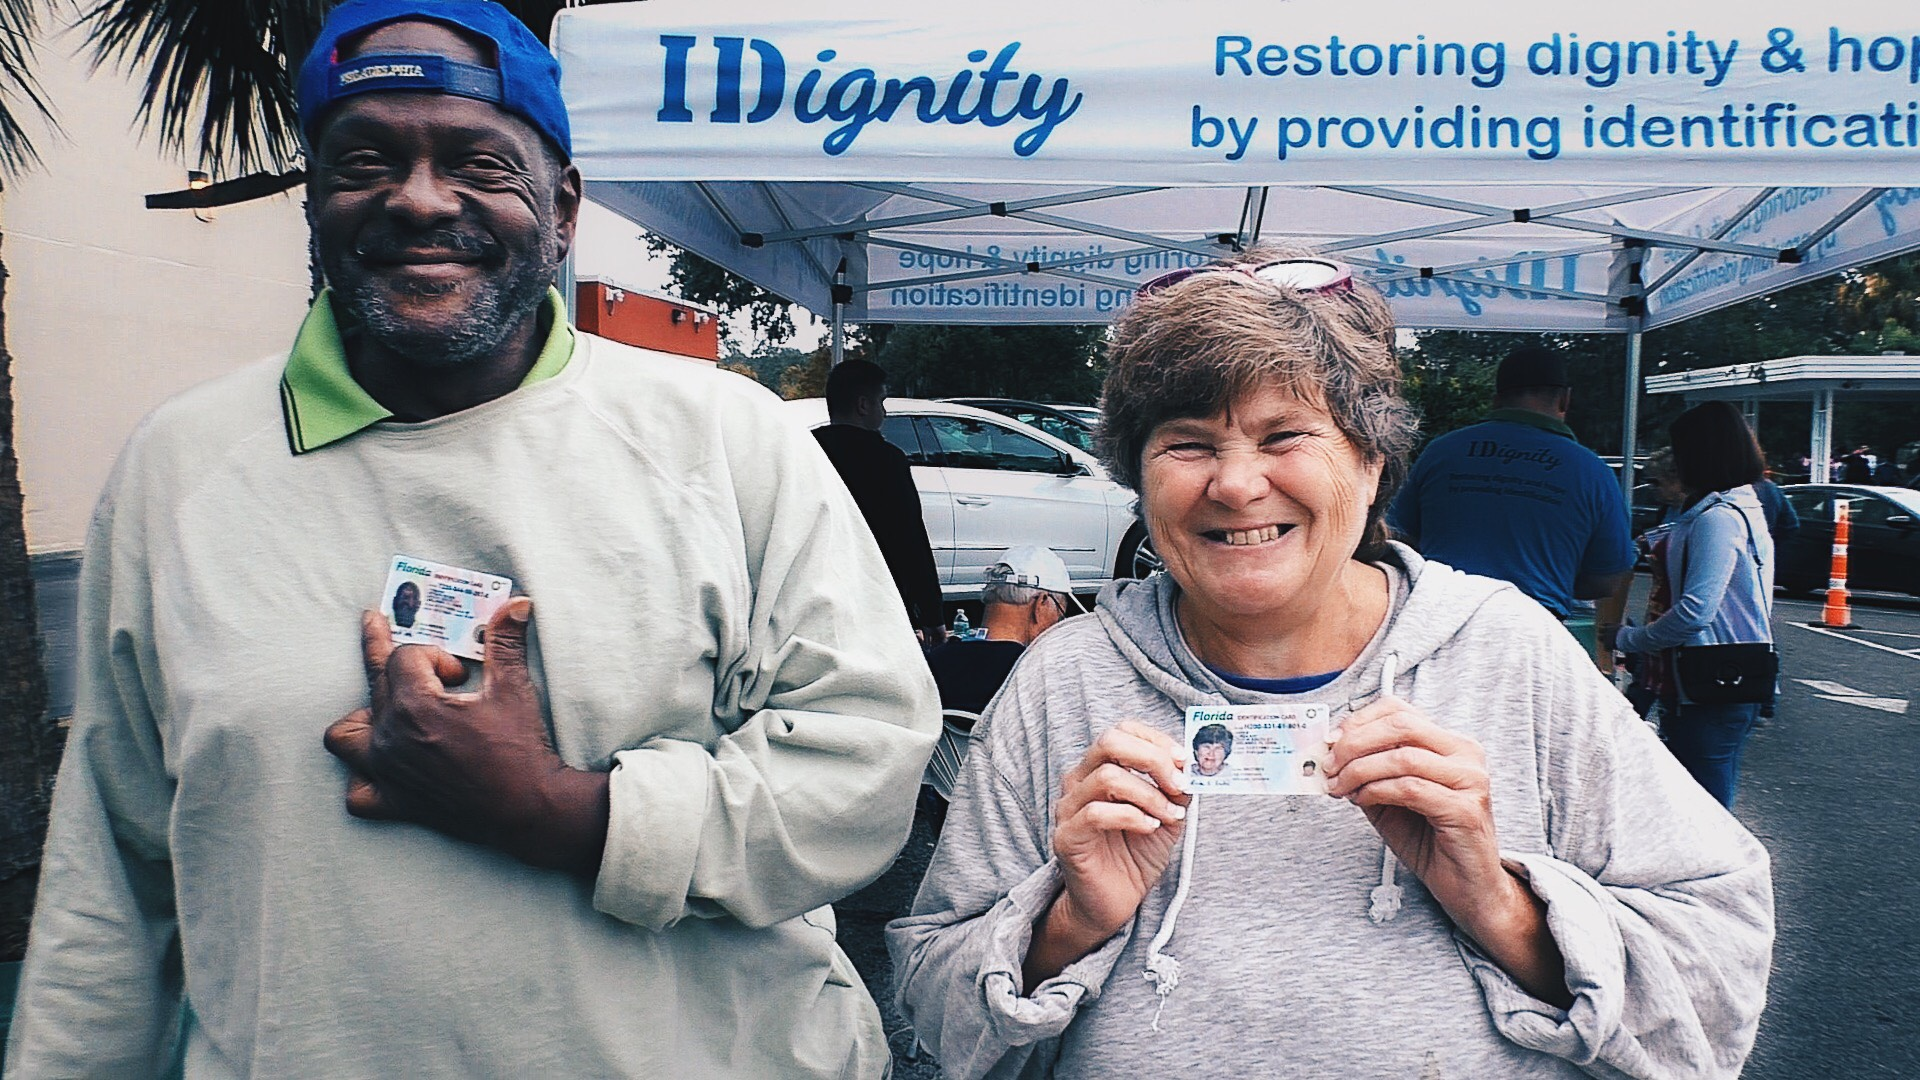 Myron and Linda on the day they came to IDignity